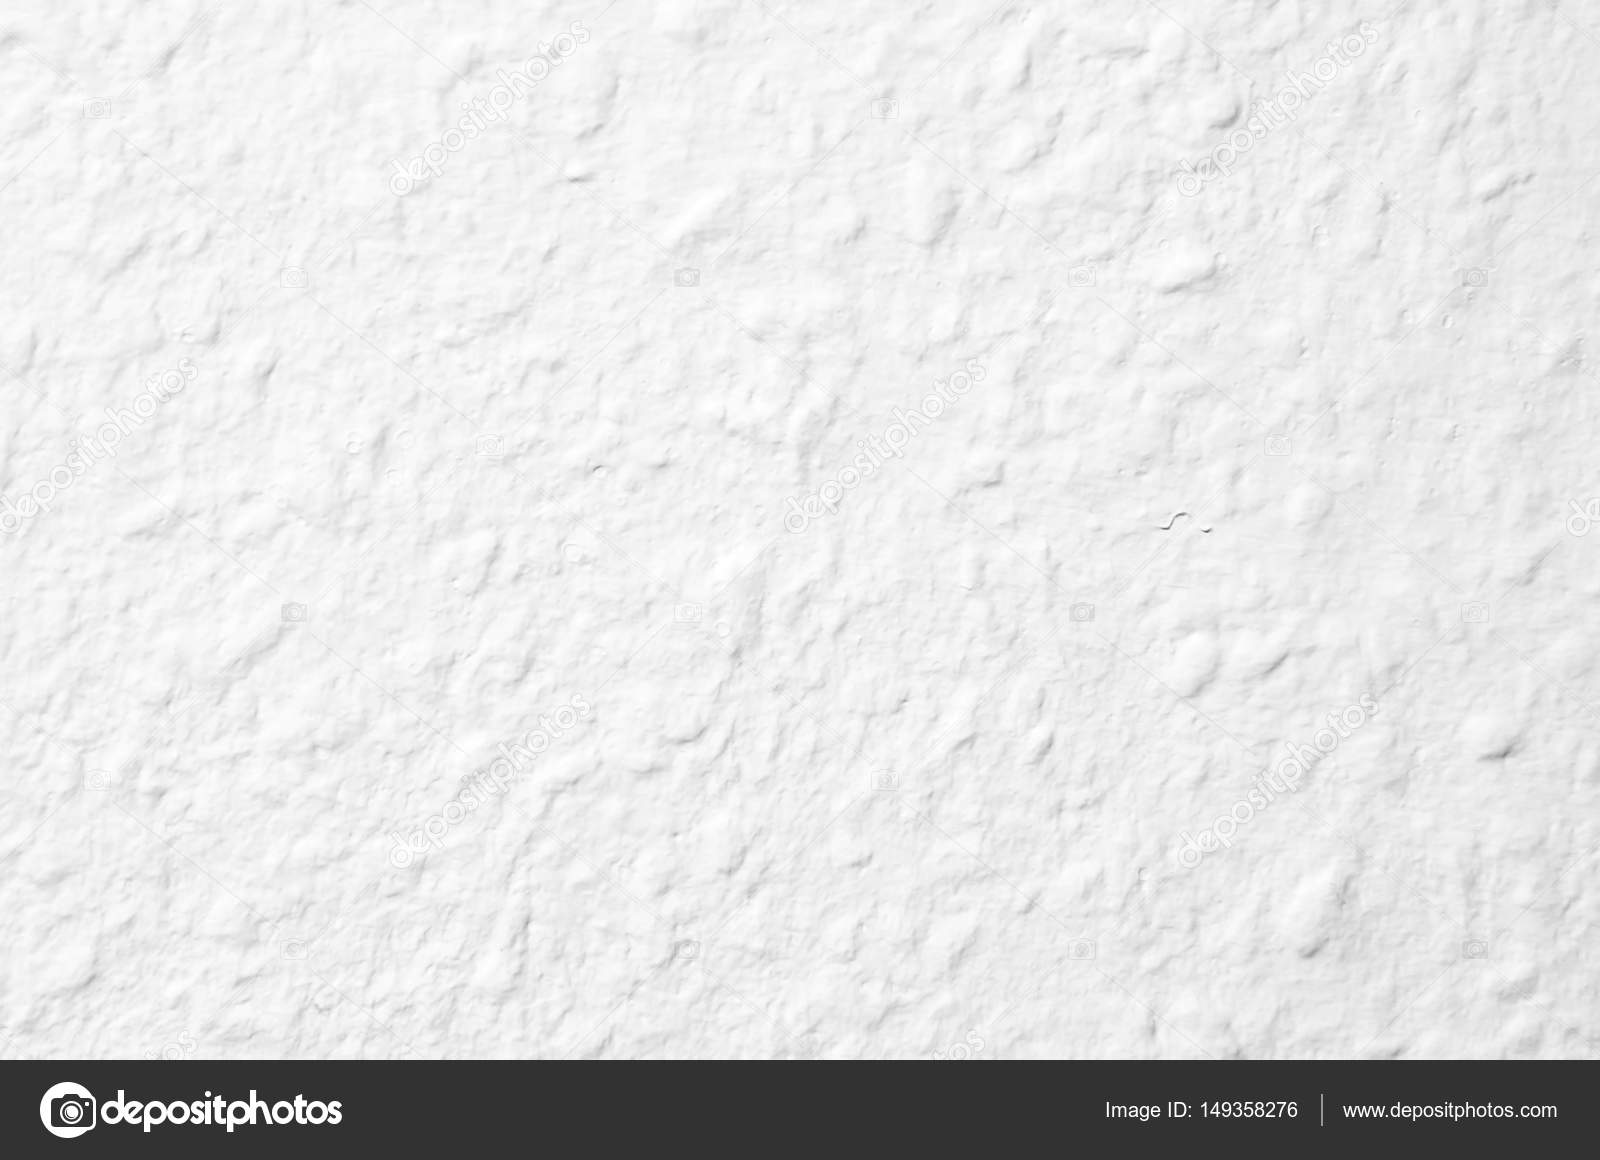 Wallpaper blanco como textura — Foto de Stock